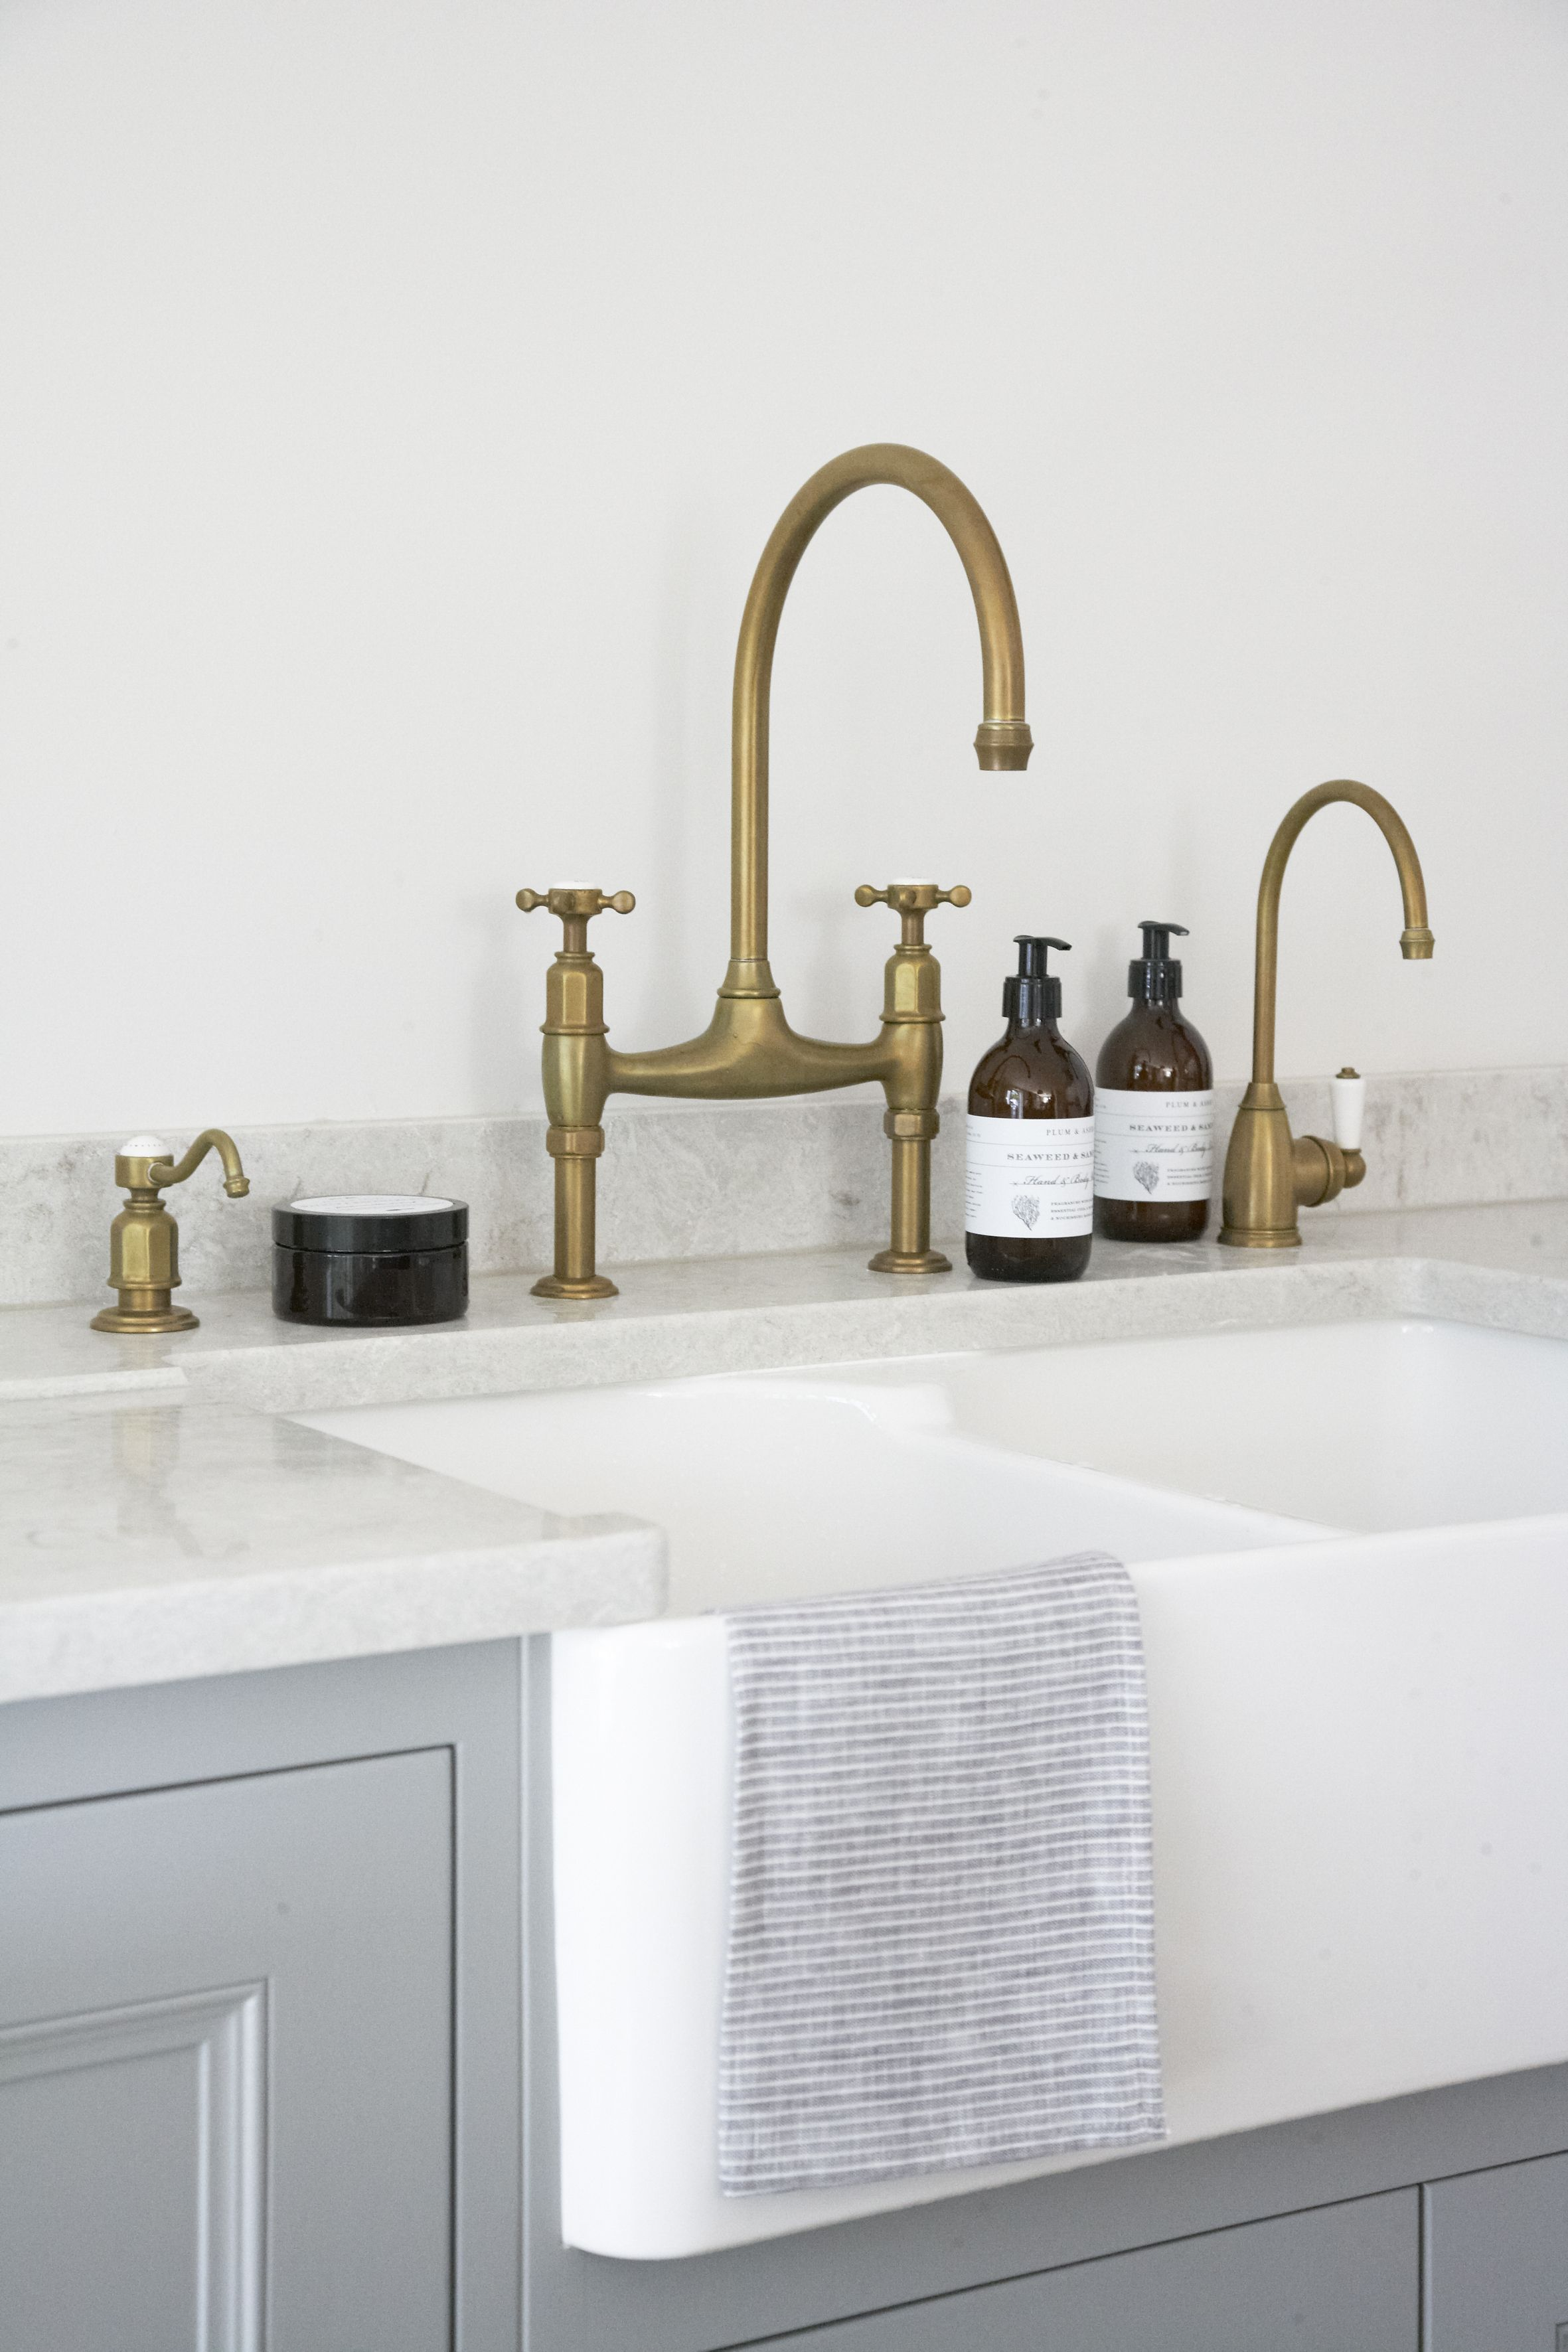 Photo of Brass kitchen tap